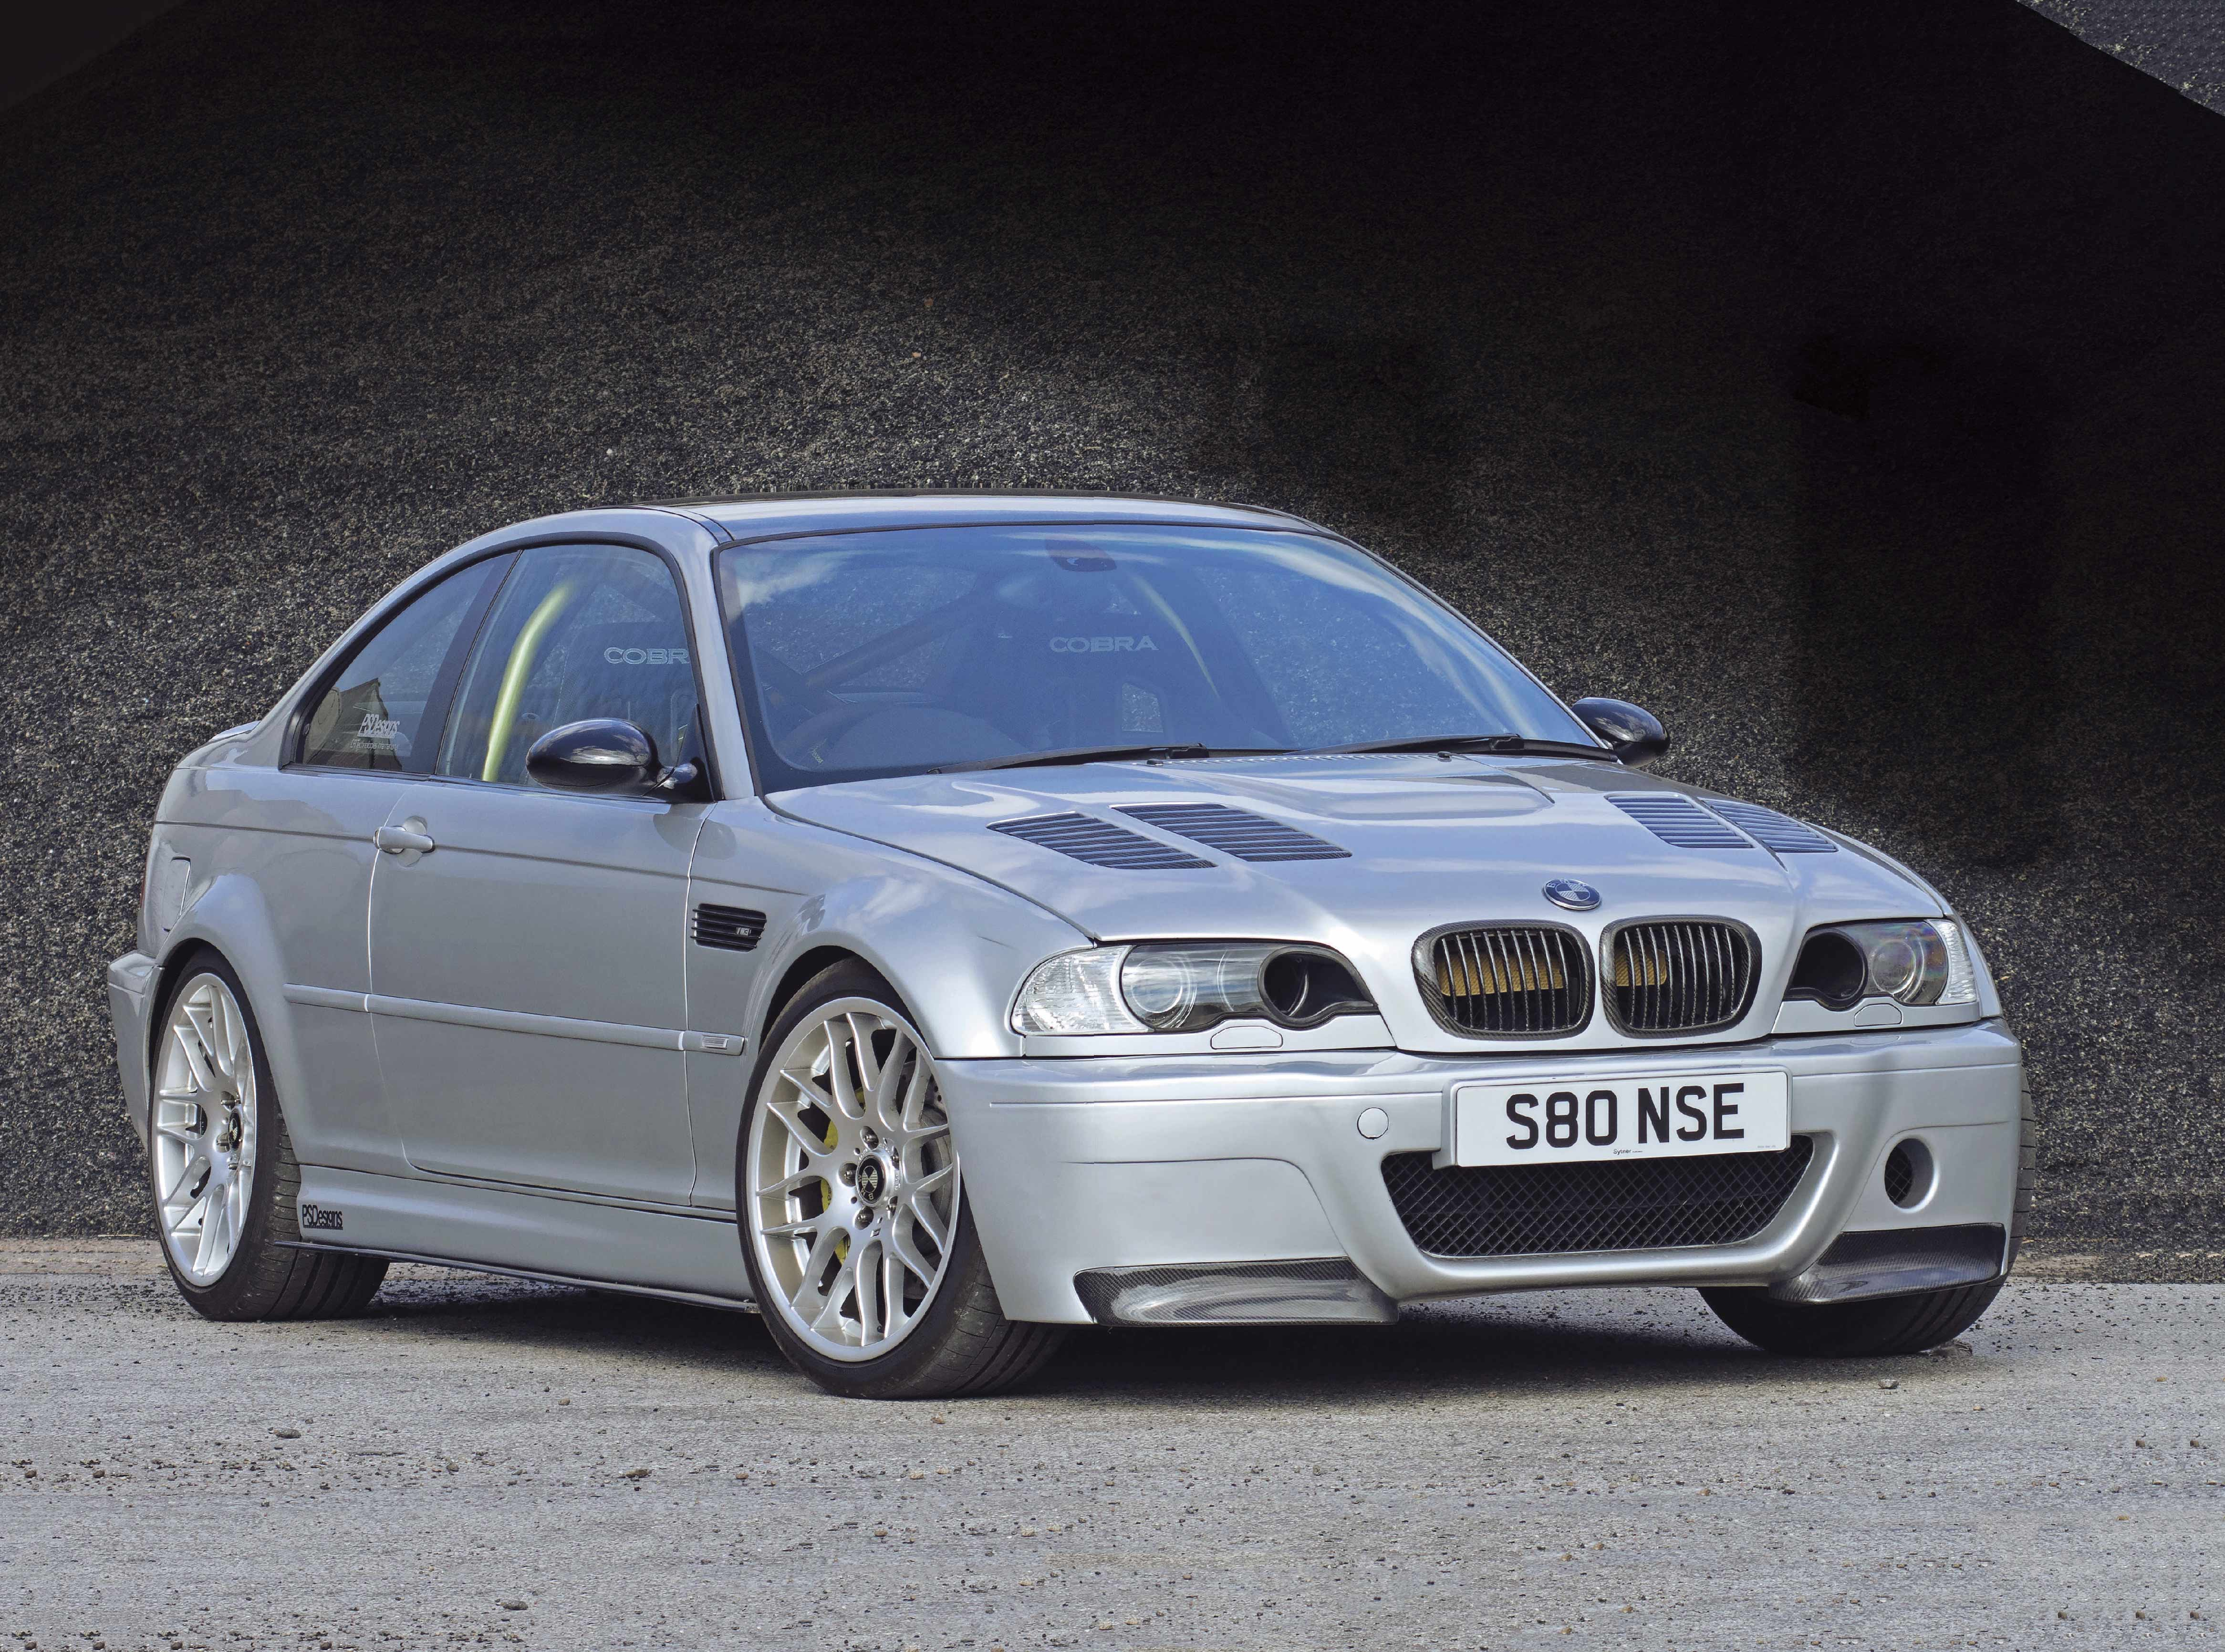 BMW E46 M3 >> Track Monster Bmw M3 Coupe E46 2 Drive My Blogs Drive